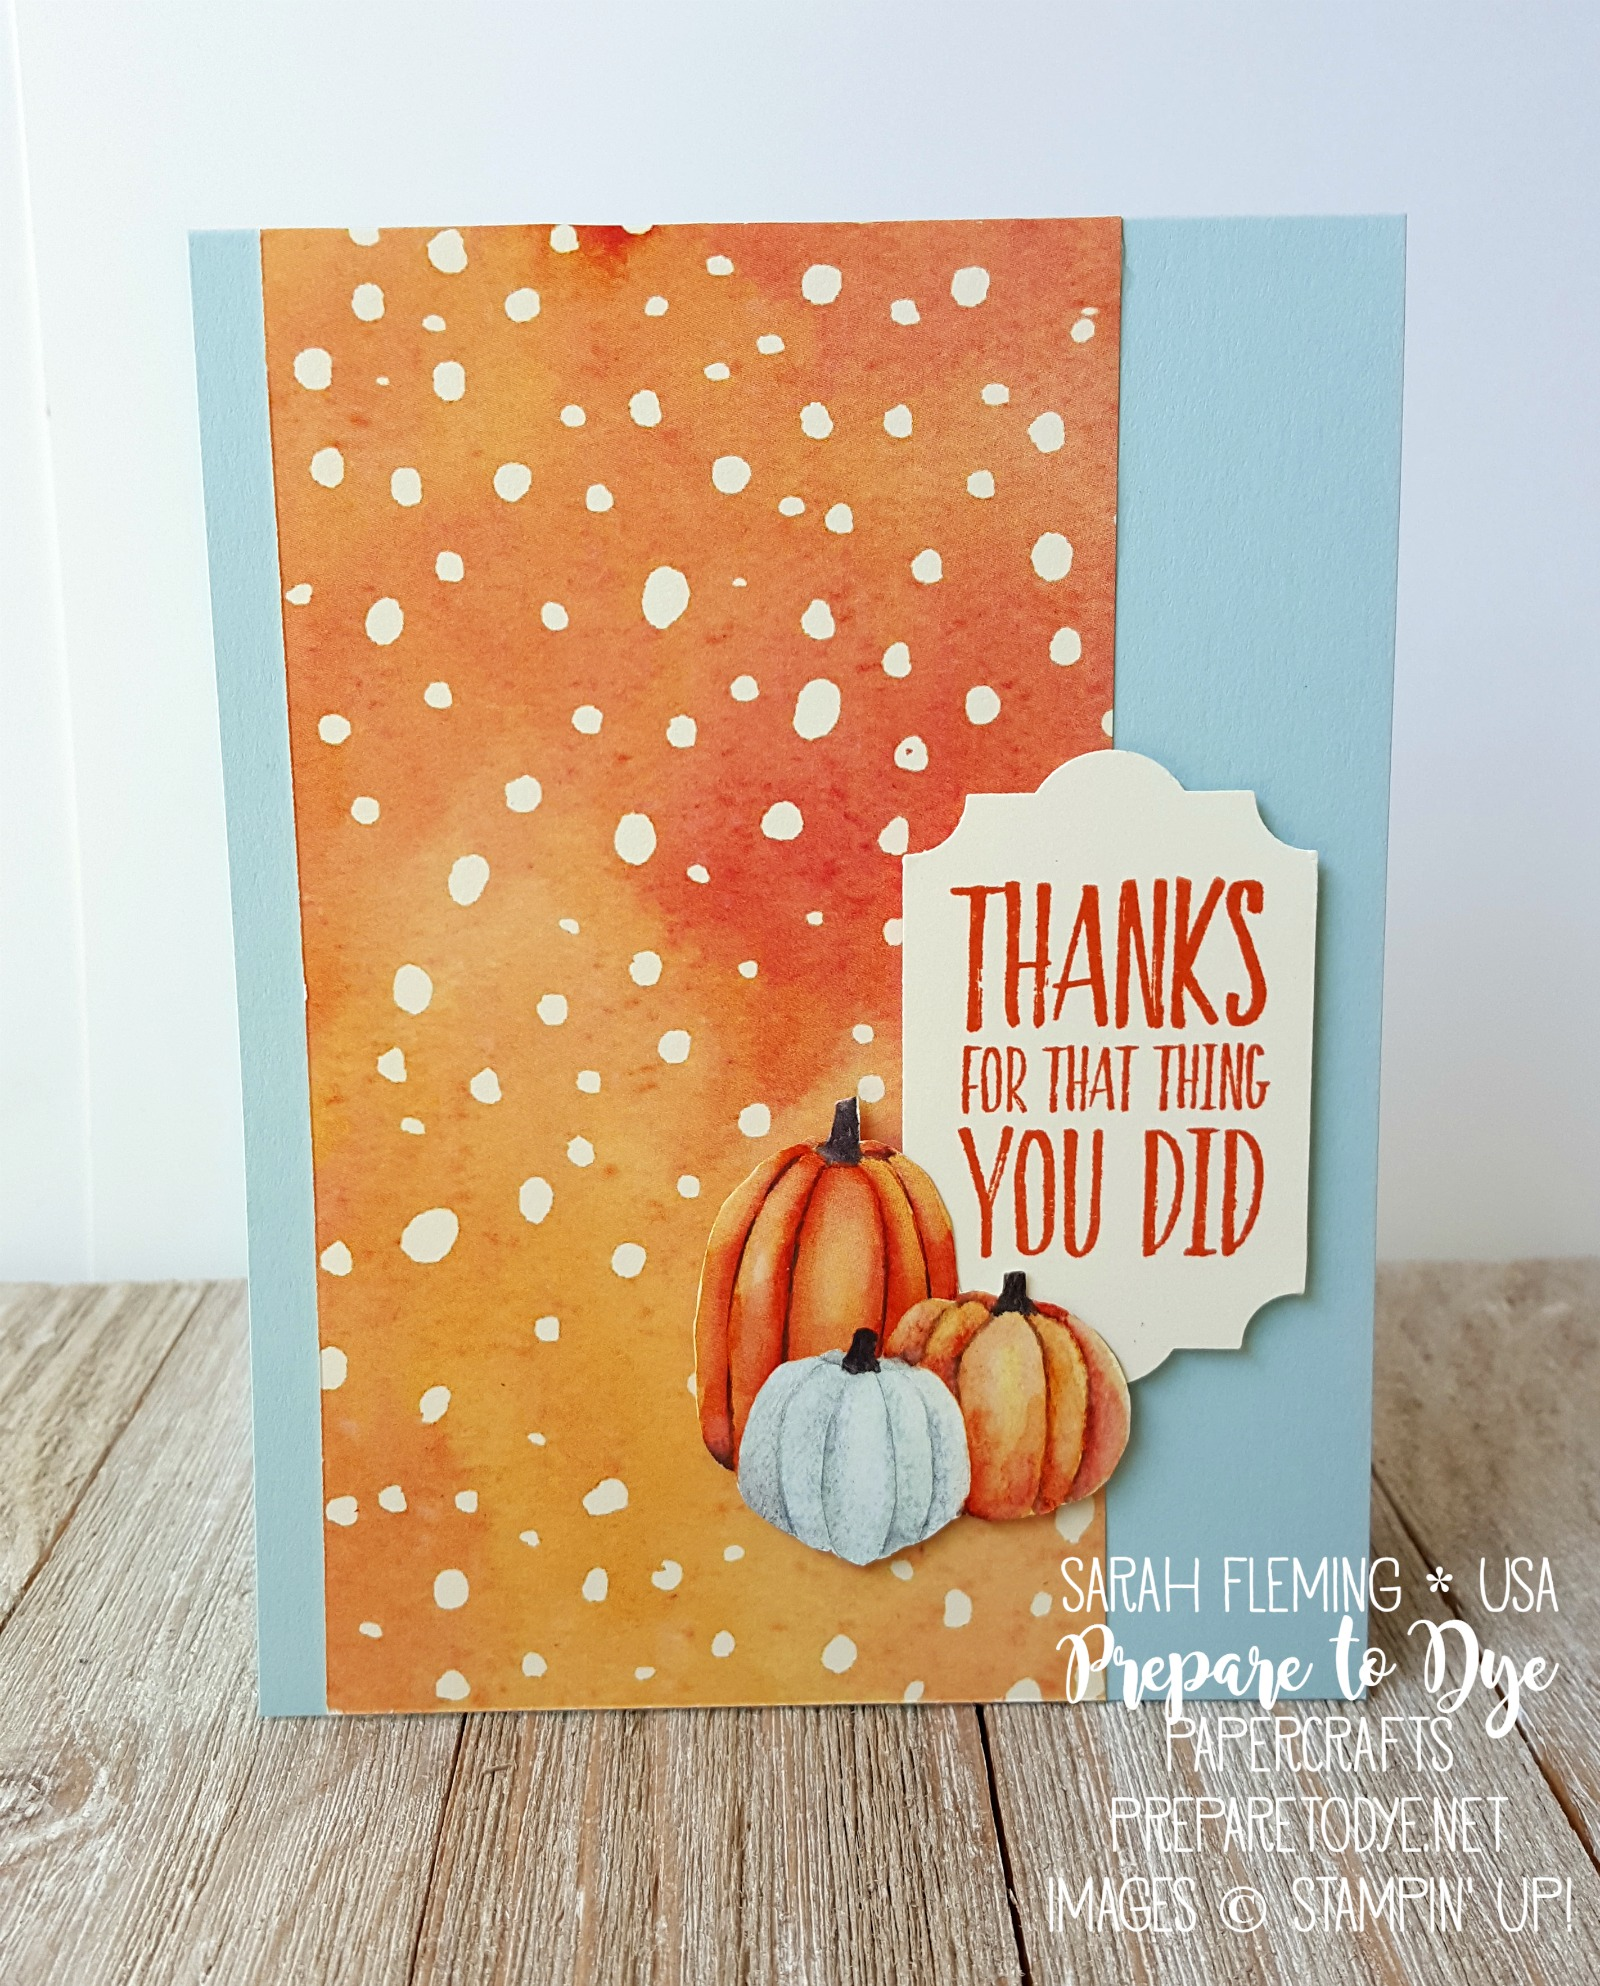 Stampin' Up! All Things Thanks stamps with Painted Autumn paper, Everyday Label Punch - easy handmade Thank you Thanksgiving autumn fall card - Sarah Fleming - Prepare to Dye Papercrafts